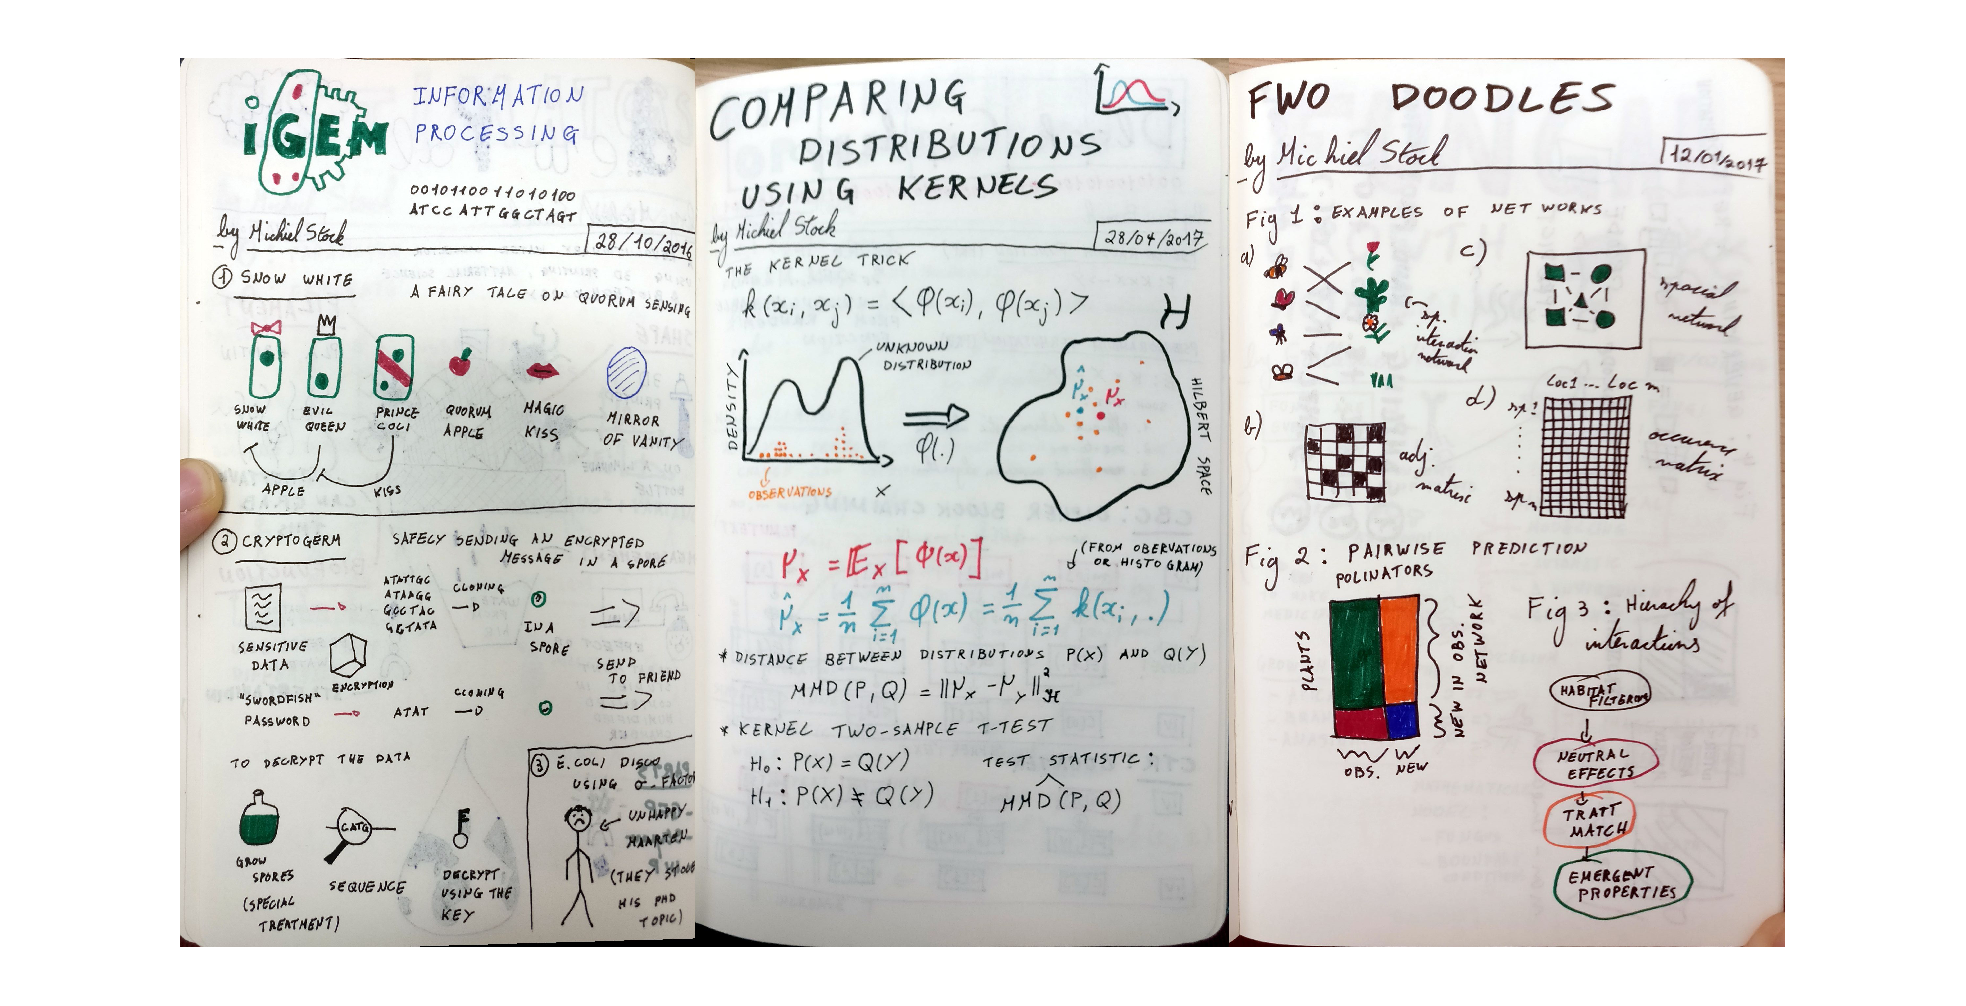 Three more sketchnotes: iGEM, comparing distributions using kernels and a brainstorm for my postdoctoral project.